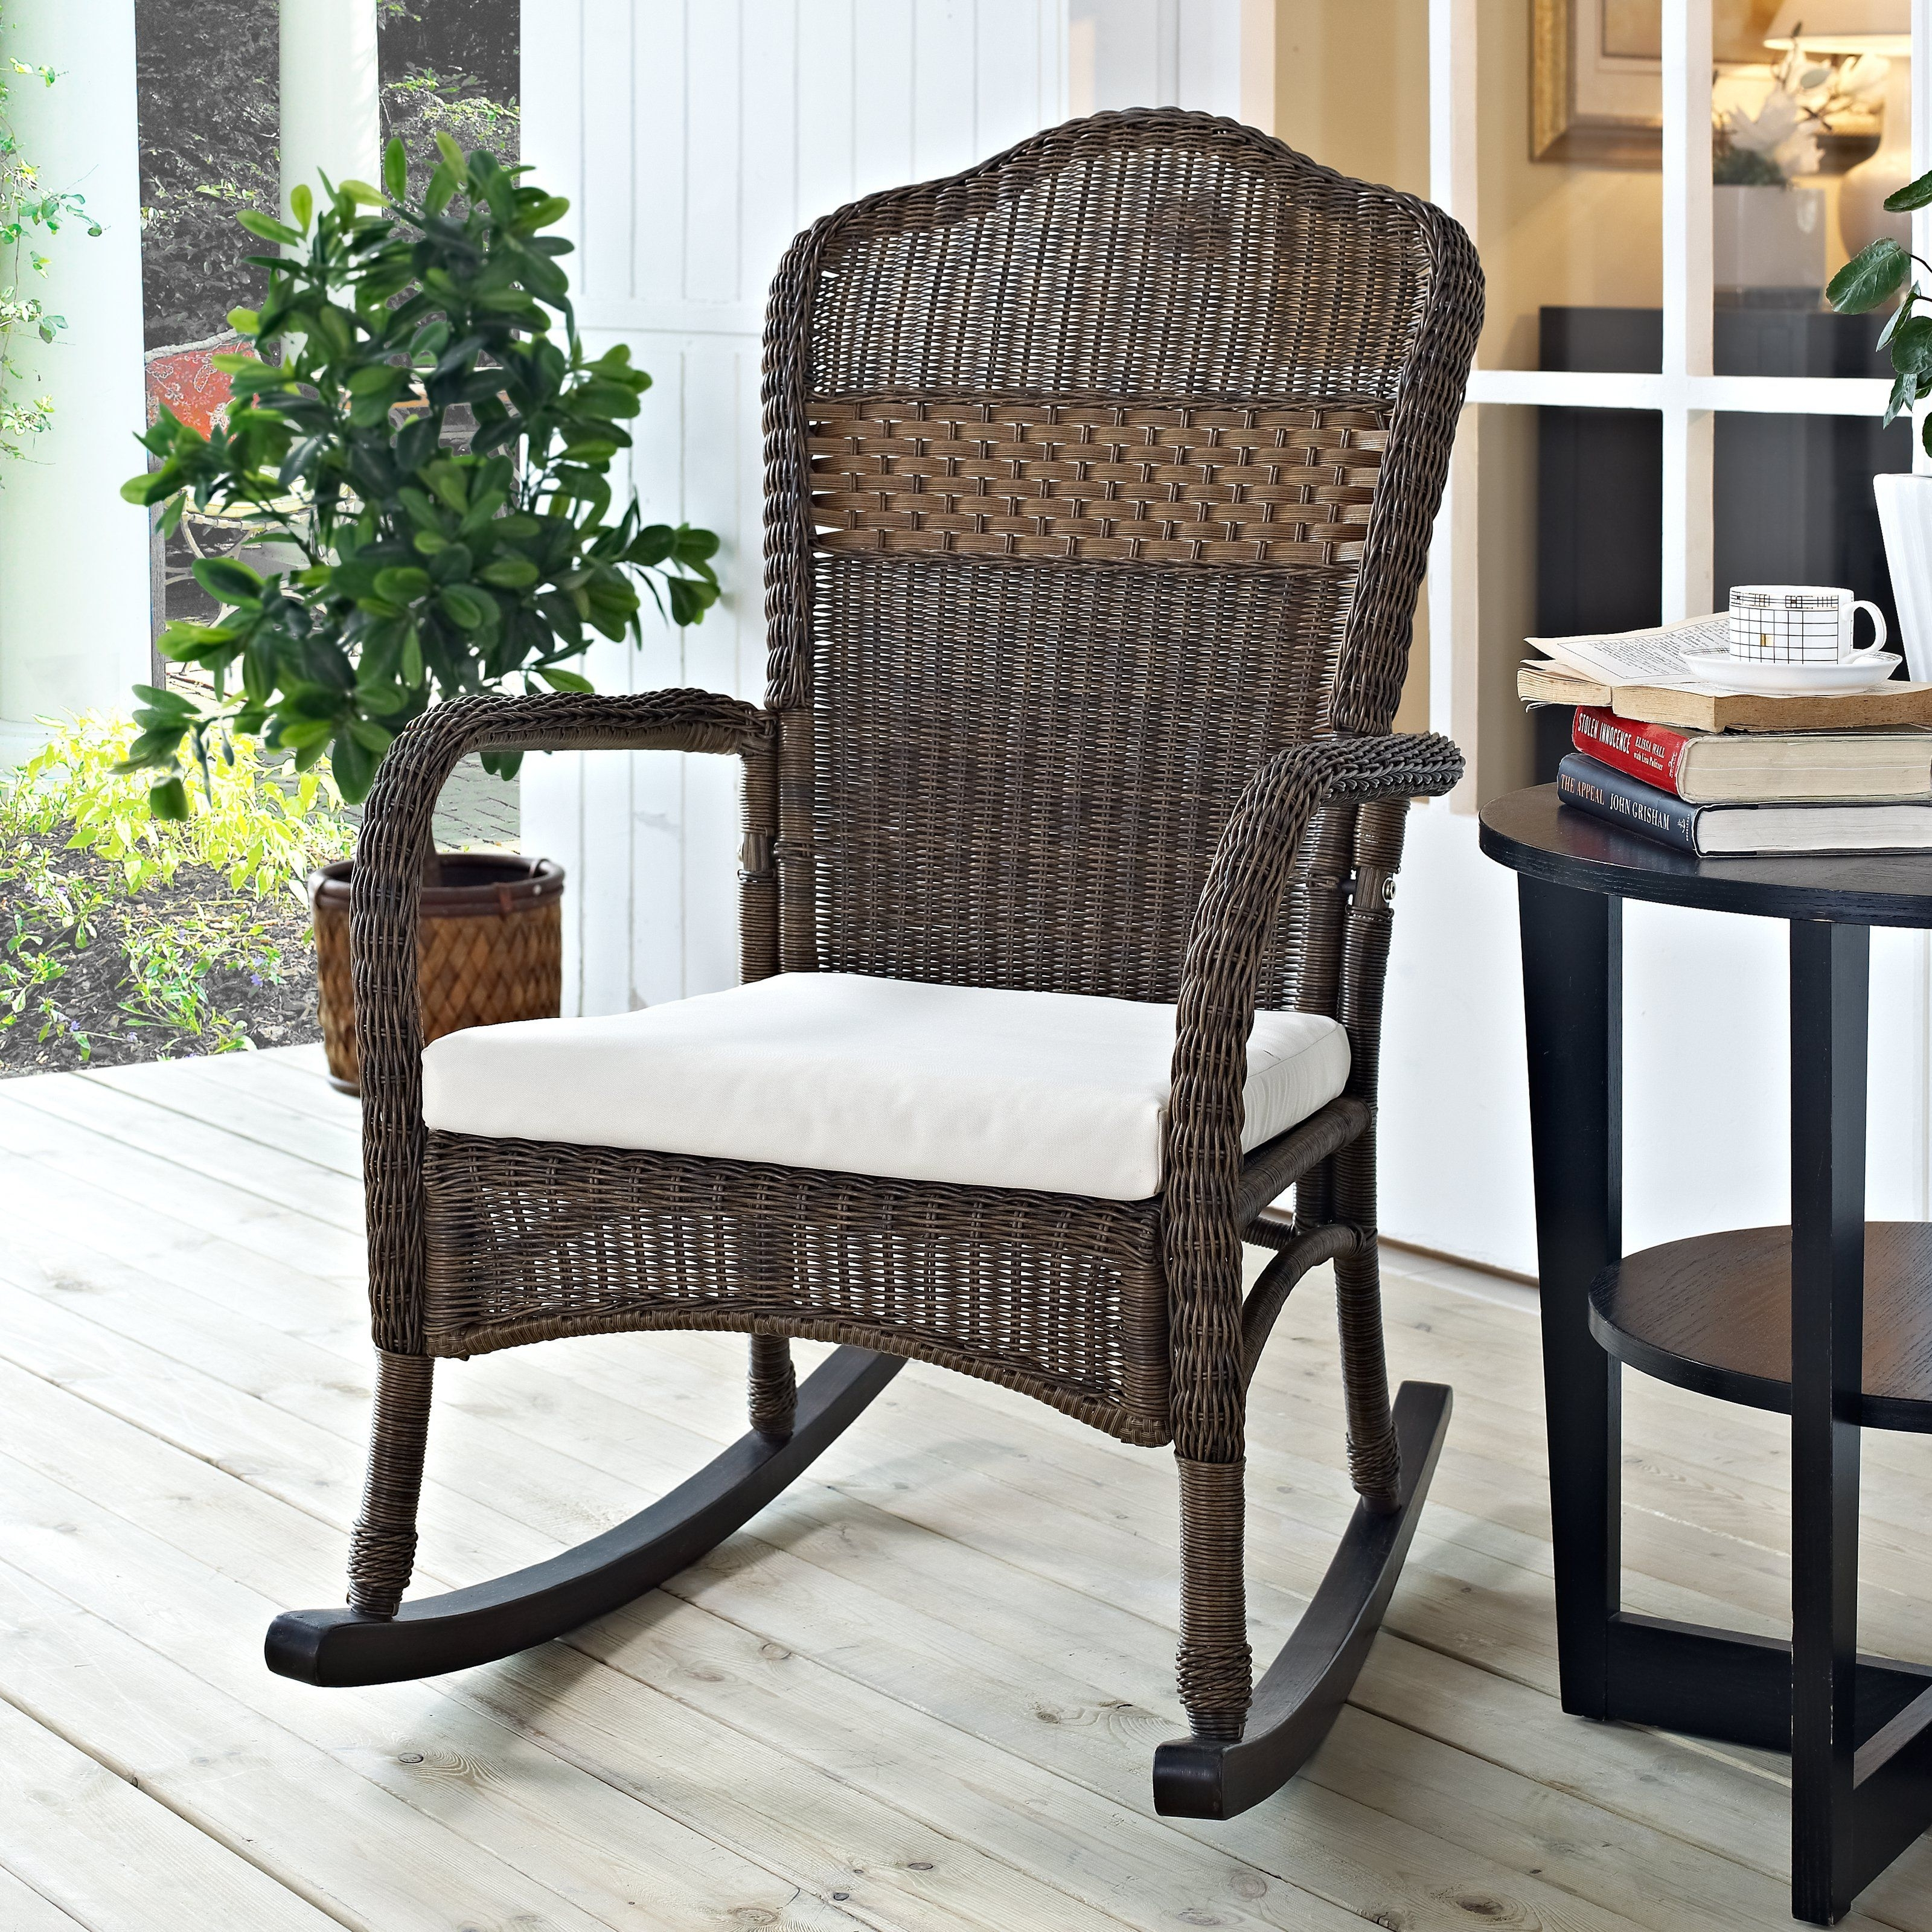 Outdoor Coral Coast Mocha Resin Wicker Rocking Chair With Beige Inside Outdoor Wicker Rocking Chairs With Cushions (#10 of 15)